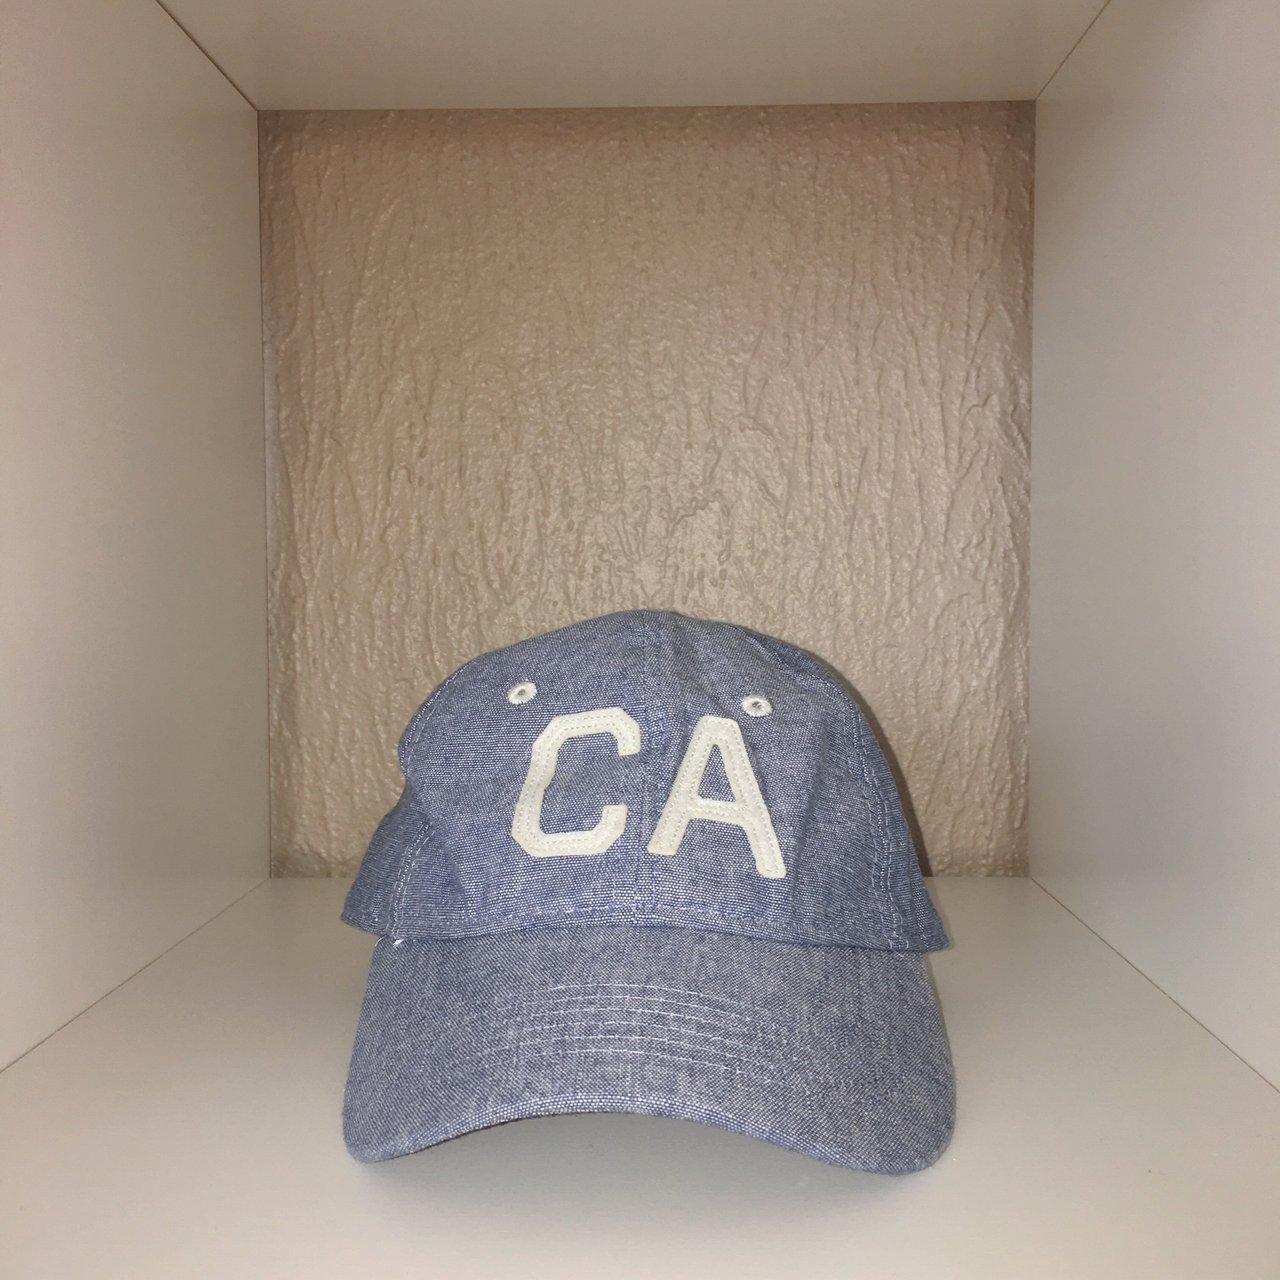 31a5895c72e 🧢 Blue gray heathered California baseball hat. Excellent - Depop